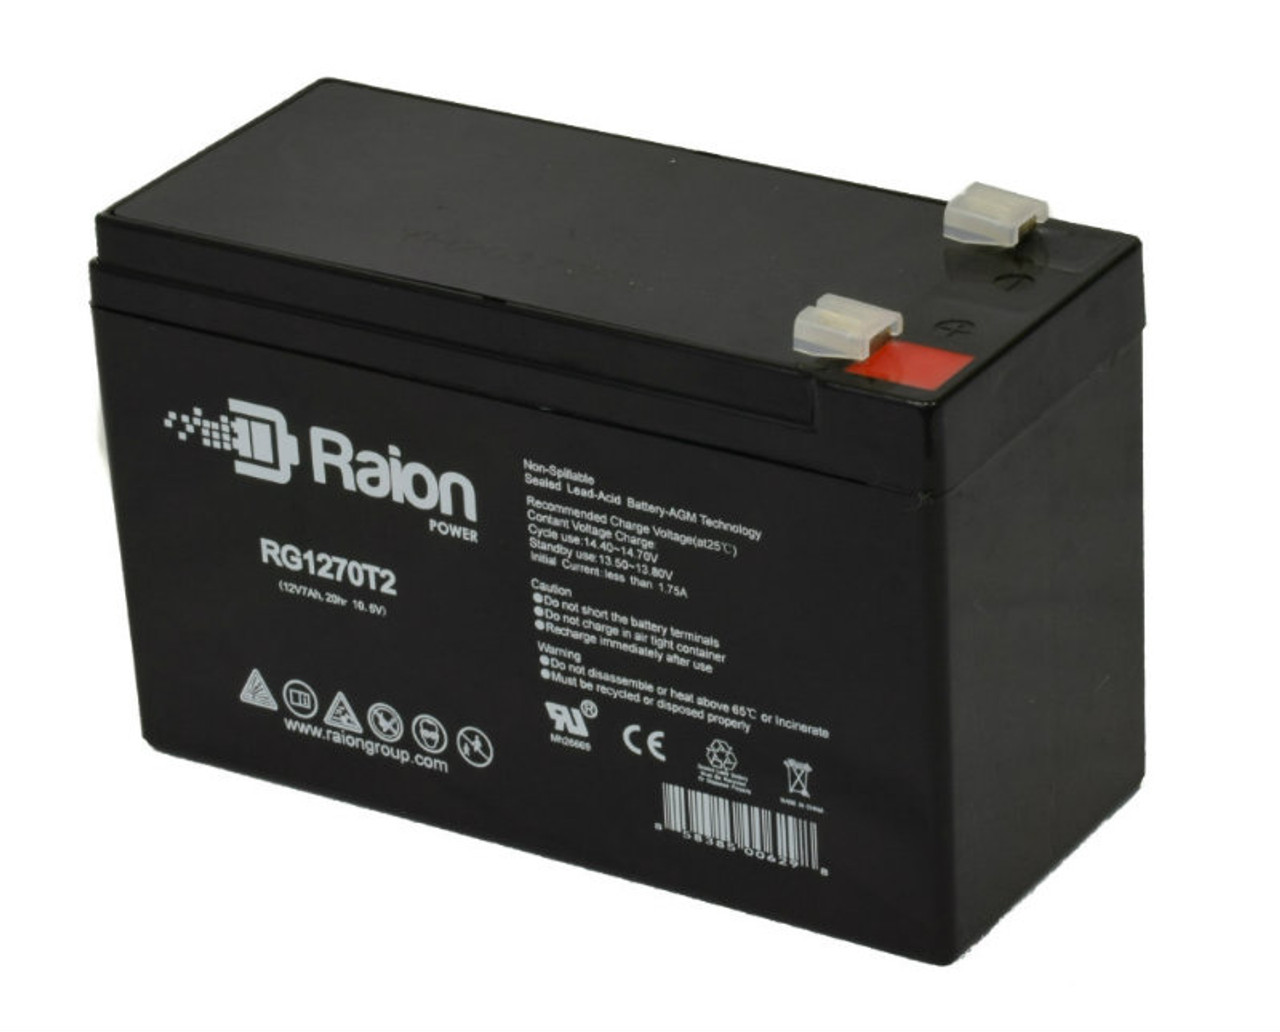 Raion Power RG1270T1 Replacement Battery for Excel XL1270